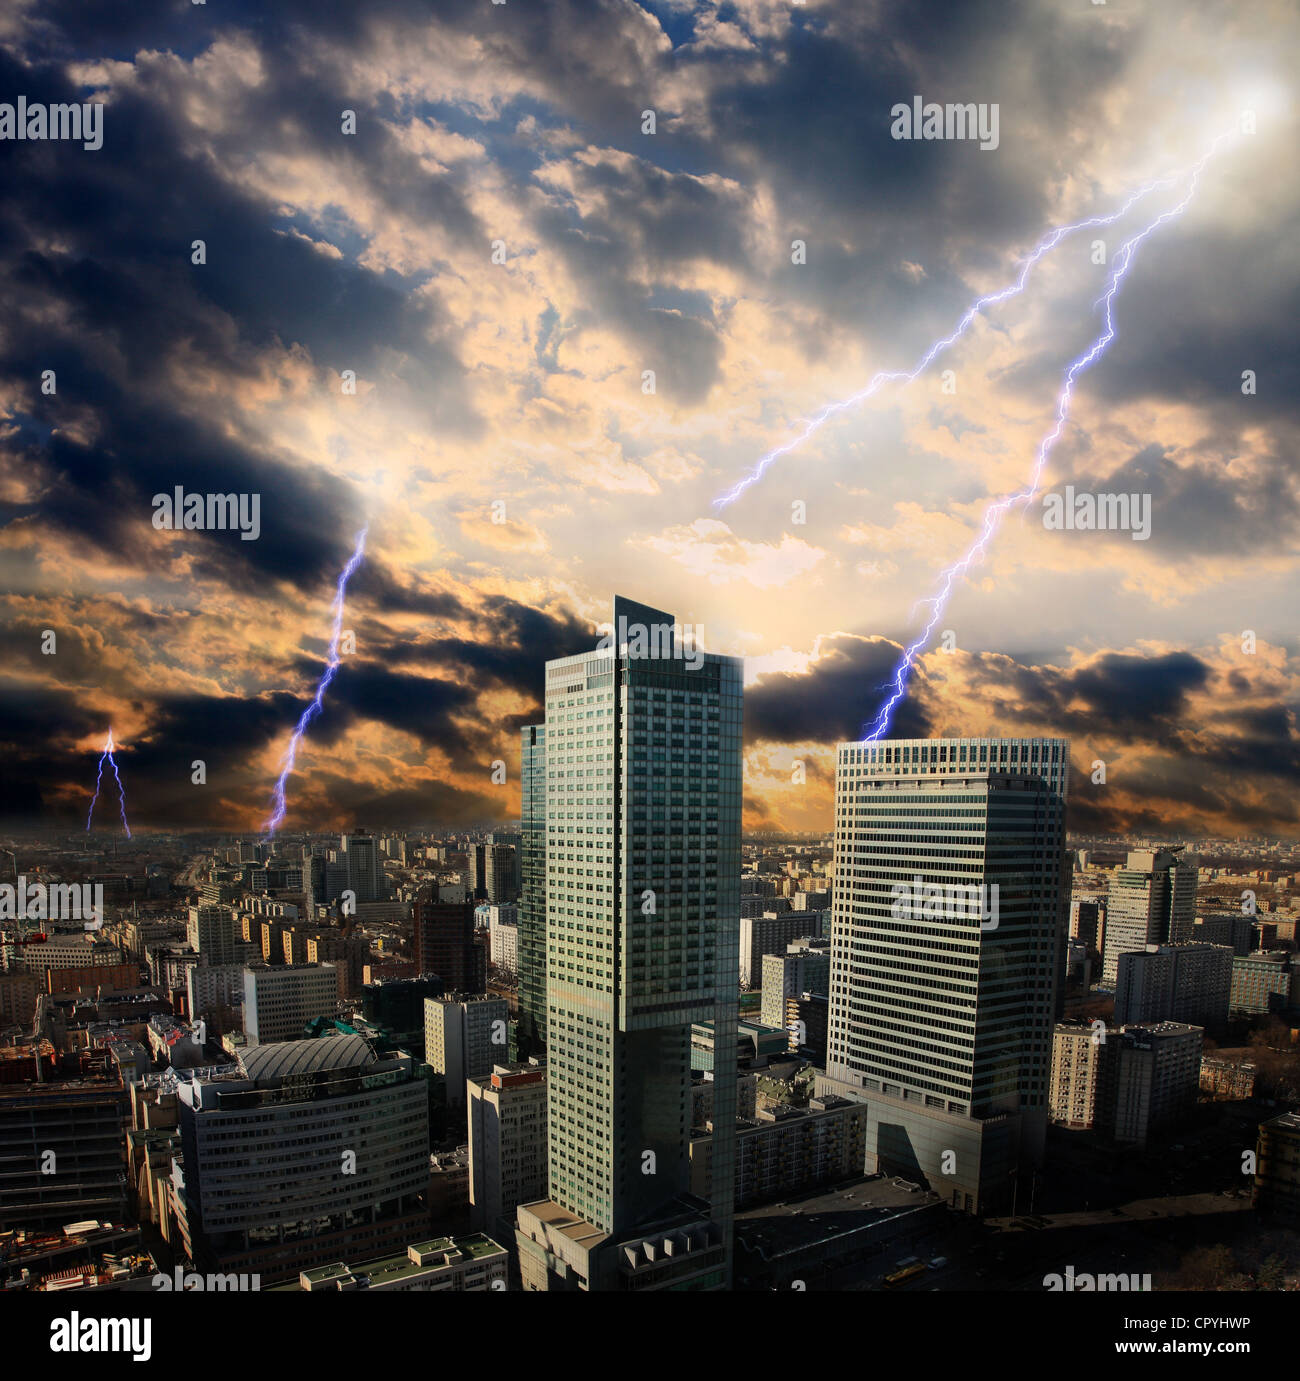 Apocalypse lightning storm in the city in Warsaw - Stock Image